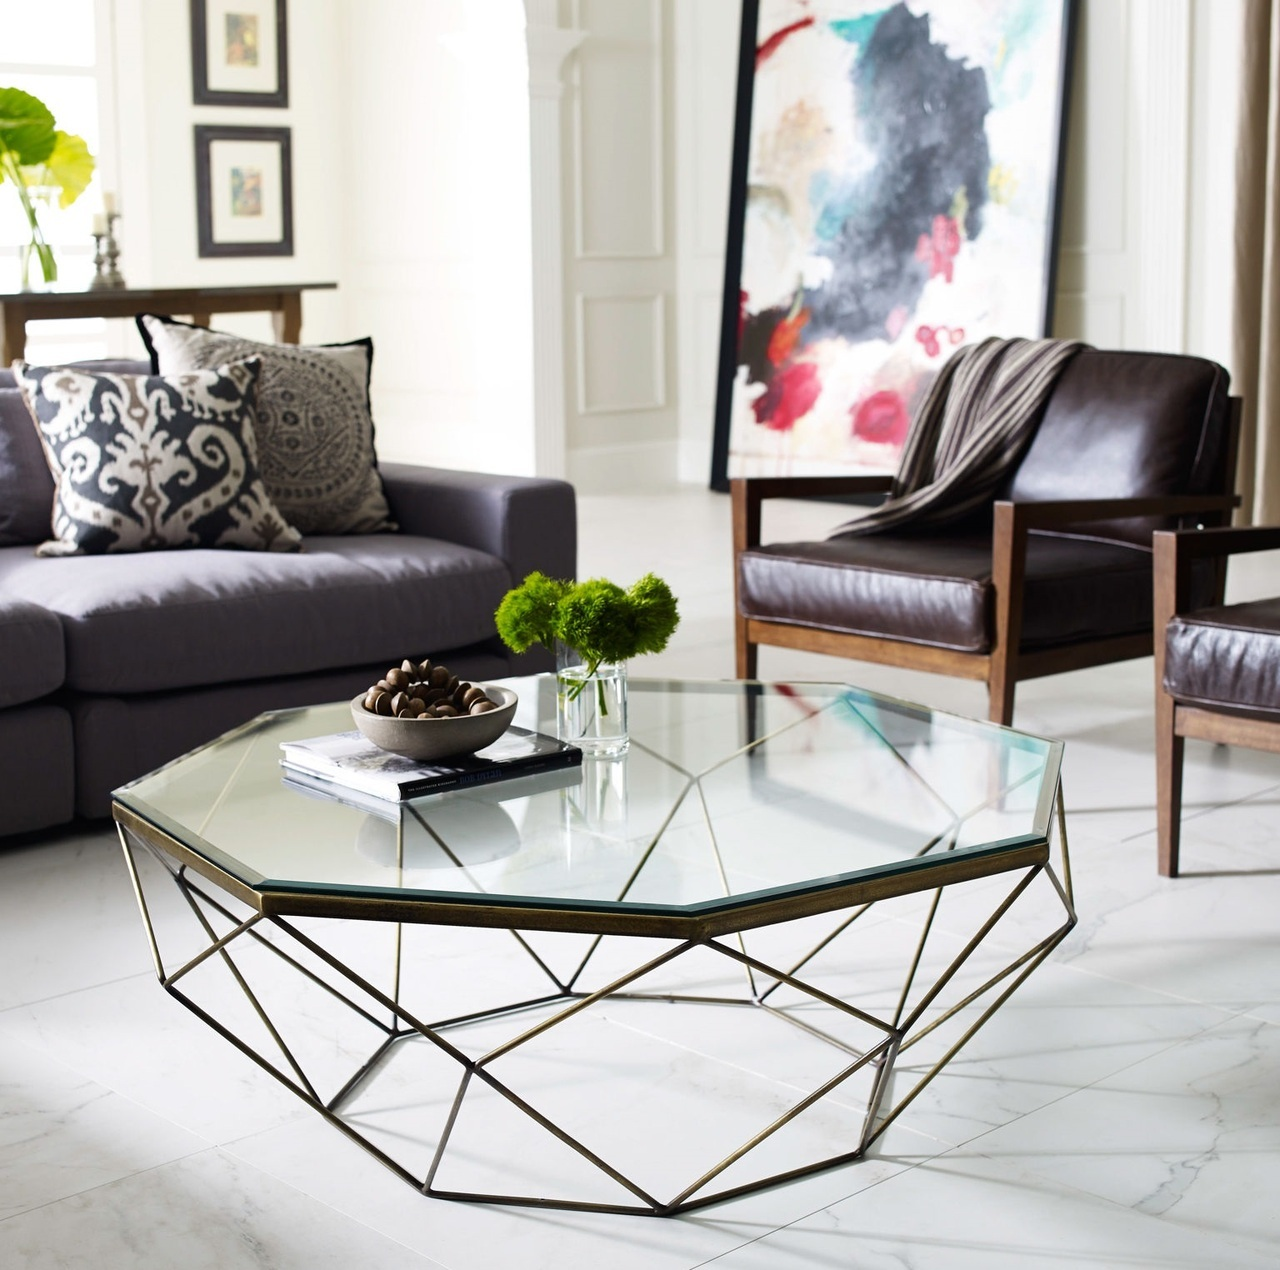 A-geometric-glass-coffee-table-adds-dynamic-and-transparency-to-the-room-